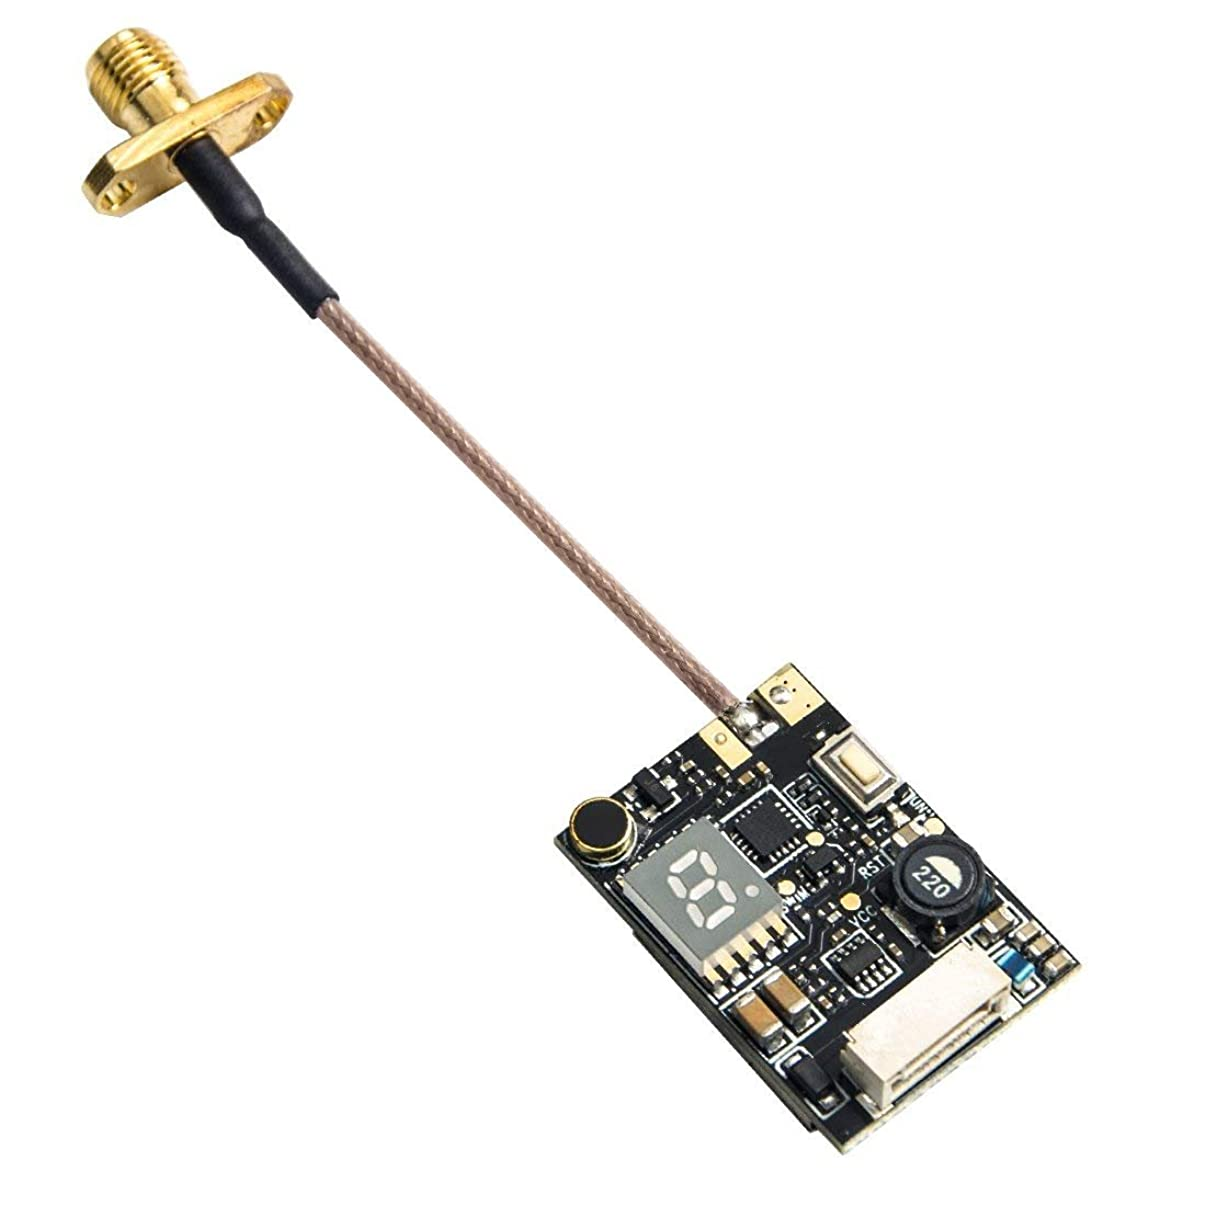 Wolfwhoop Q1-Pro 0.01/25/200/500/800mW Switchable 5.8GHz 37CH FPV Transmitter with Pigtail Antenna and FC Uart Support OSD Configuring via Betaflight Flight Controller